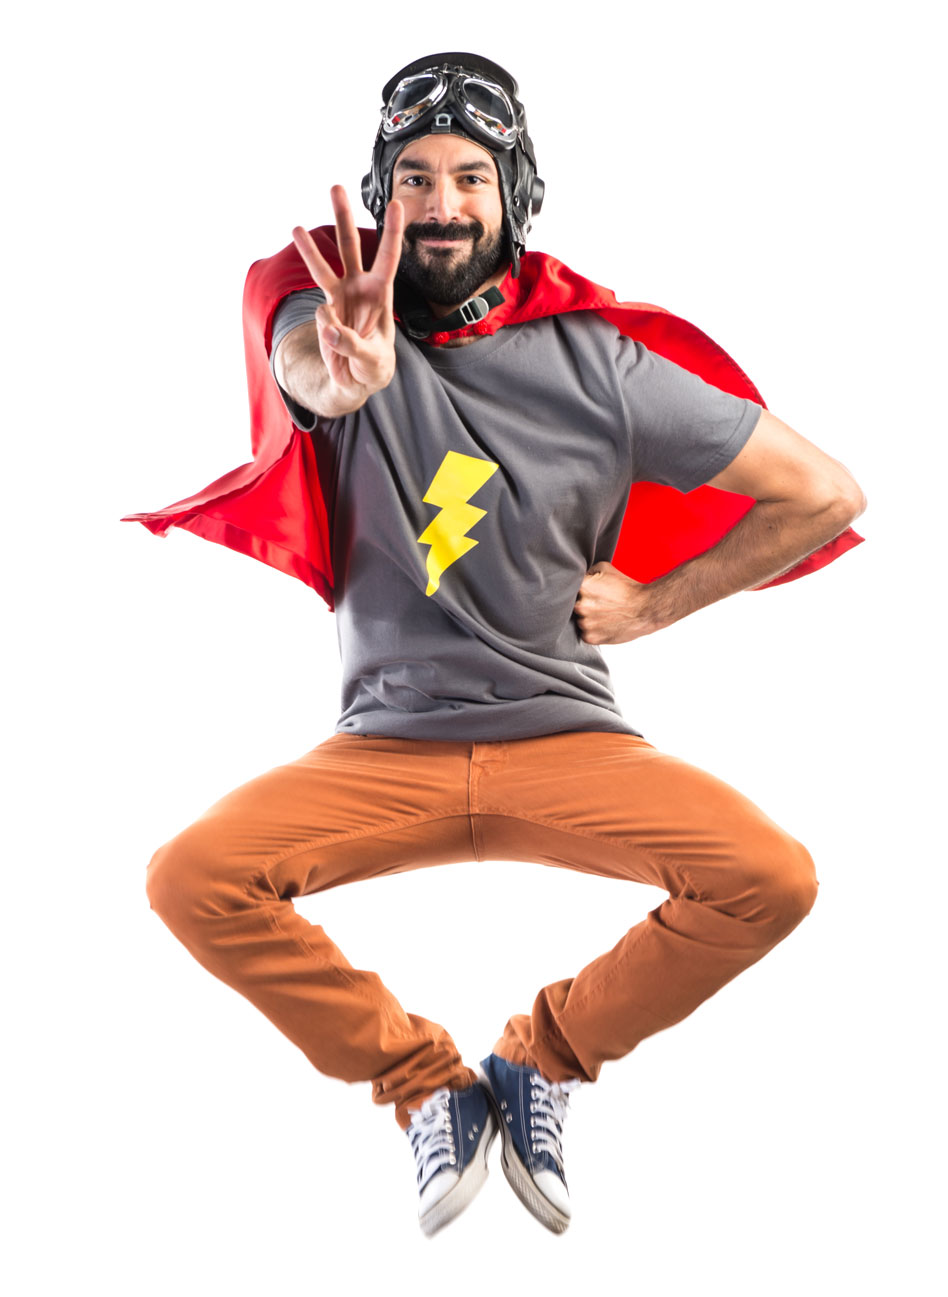 Man in Super Hero Type Outfit Holding Up 3 Fingers